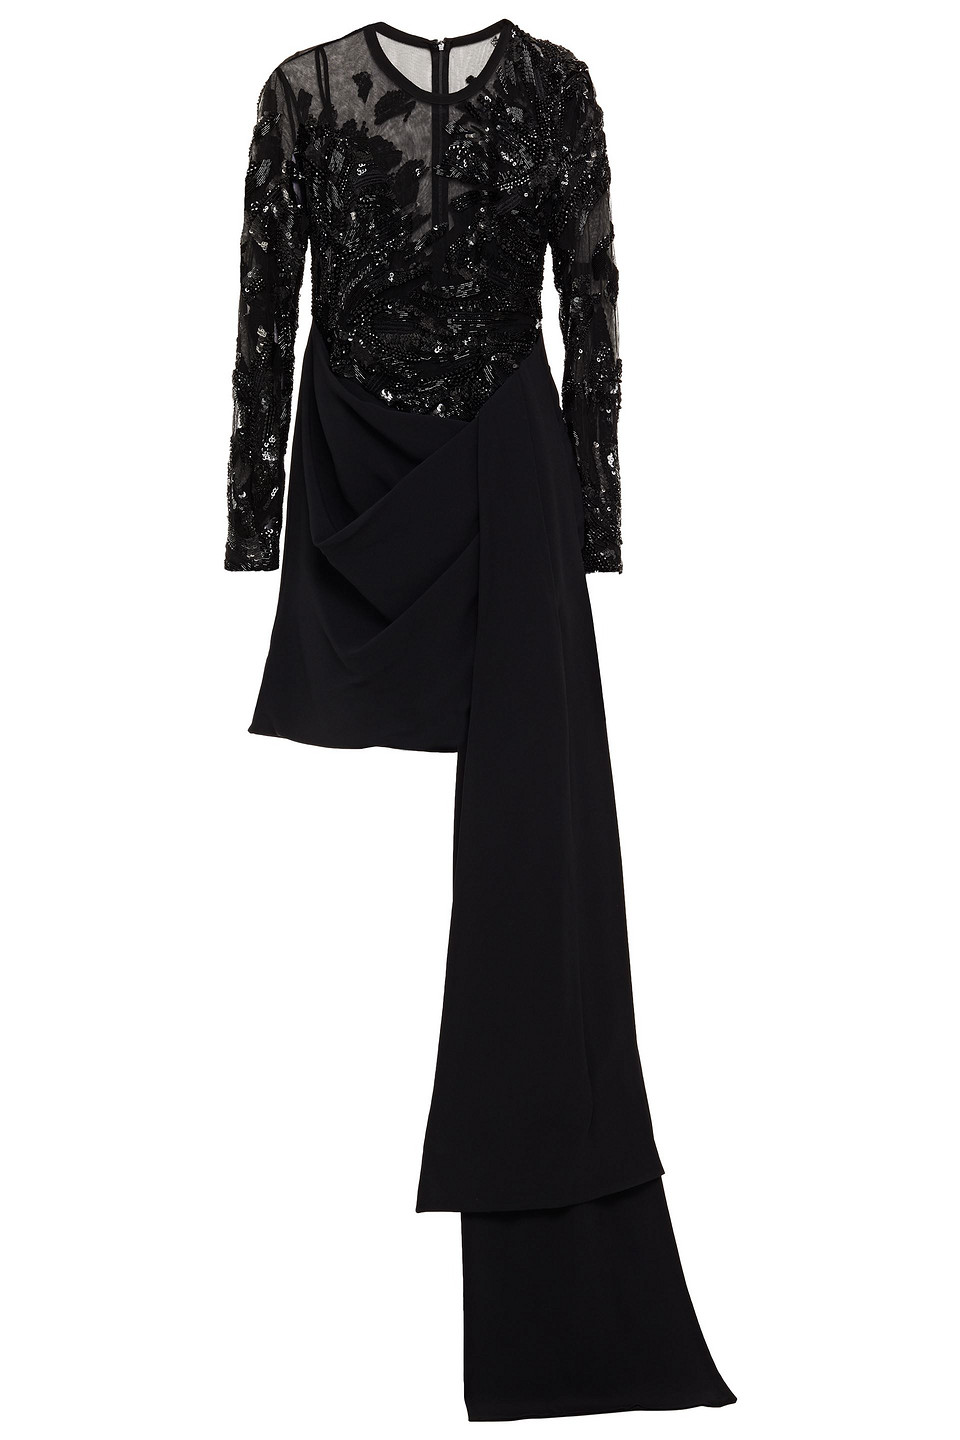 Elie Saab | Elie Saab Woman Embellished Tulle-paneled Draped Crepe Mini Dress Black | Clouty